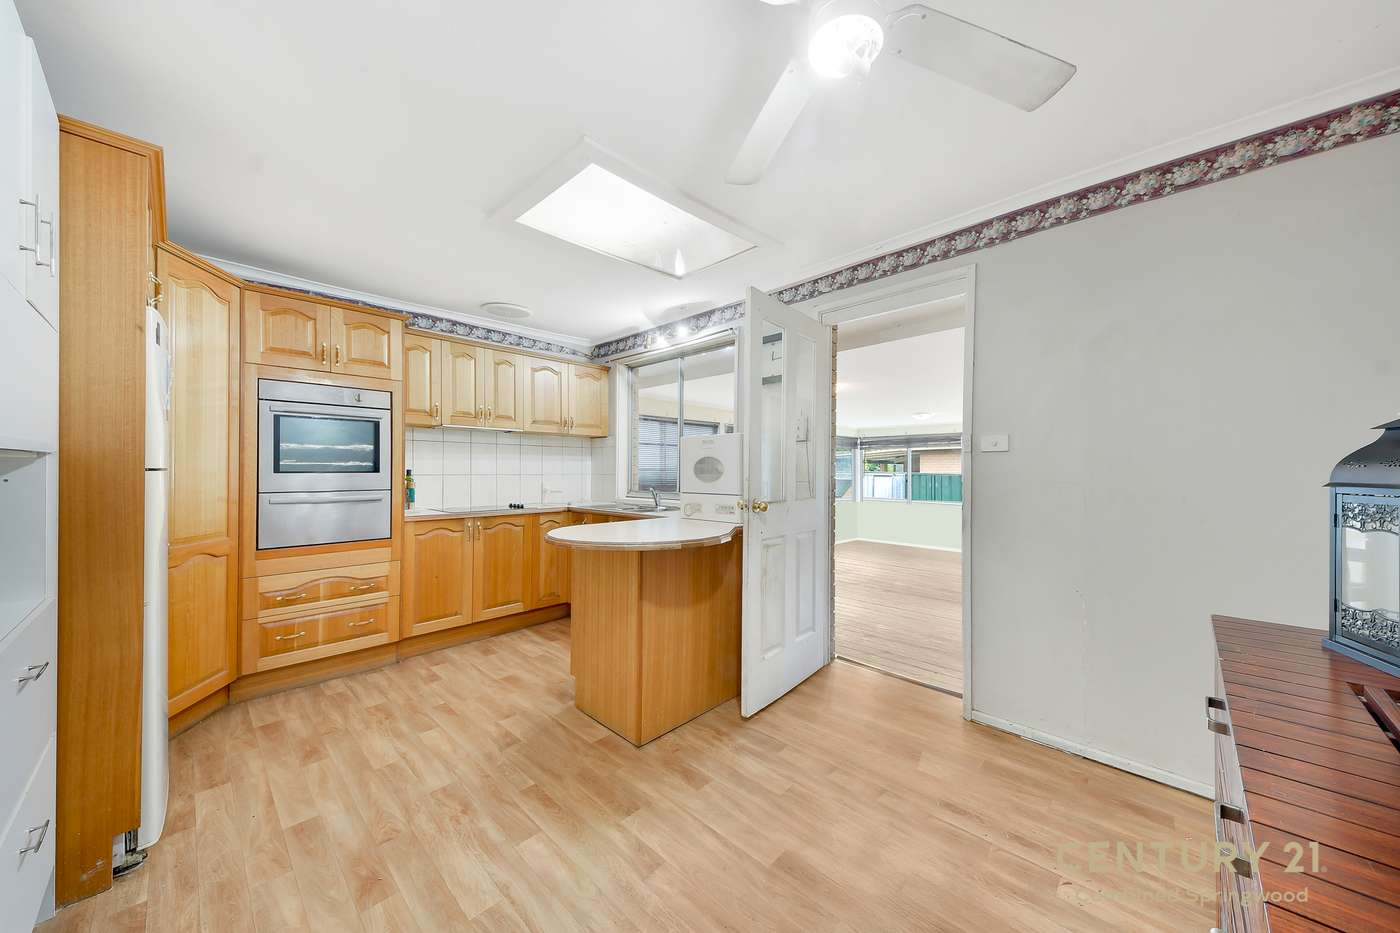 Main view of Homely house listing, 77 Pyramid Street, Emu Plains, NSW 2750